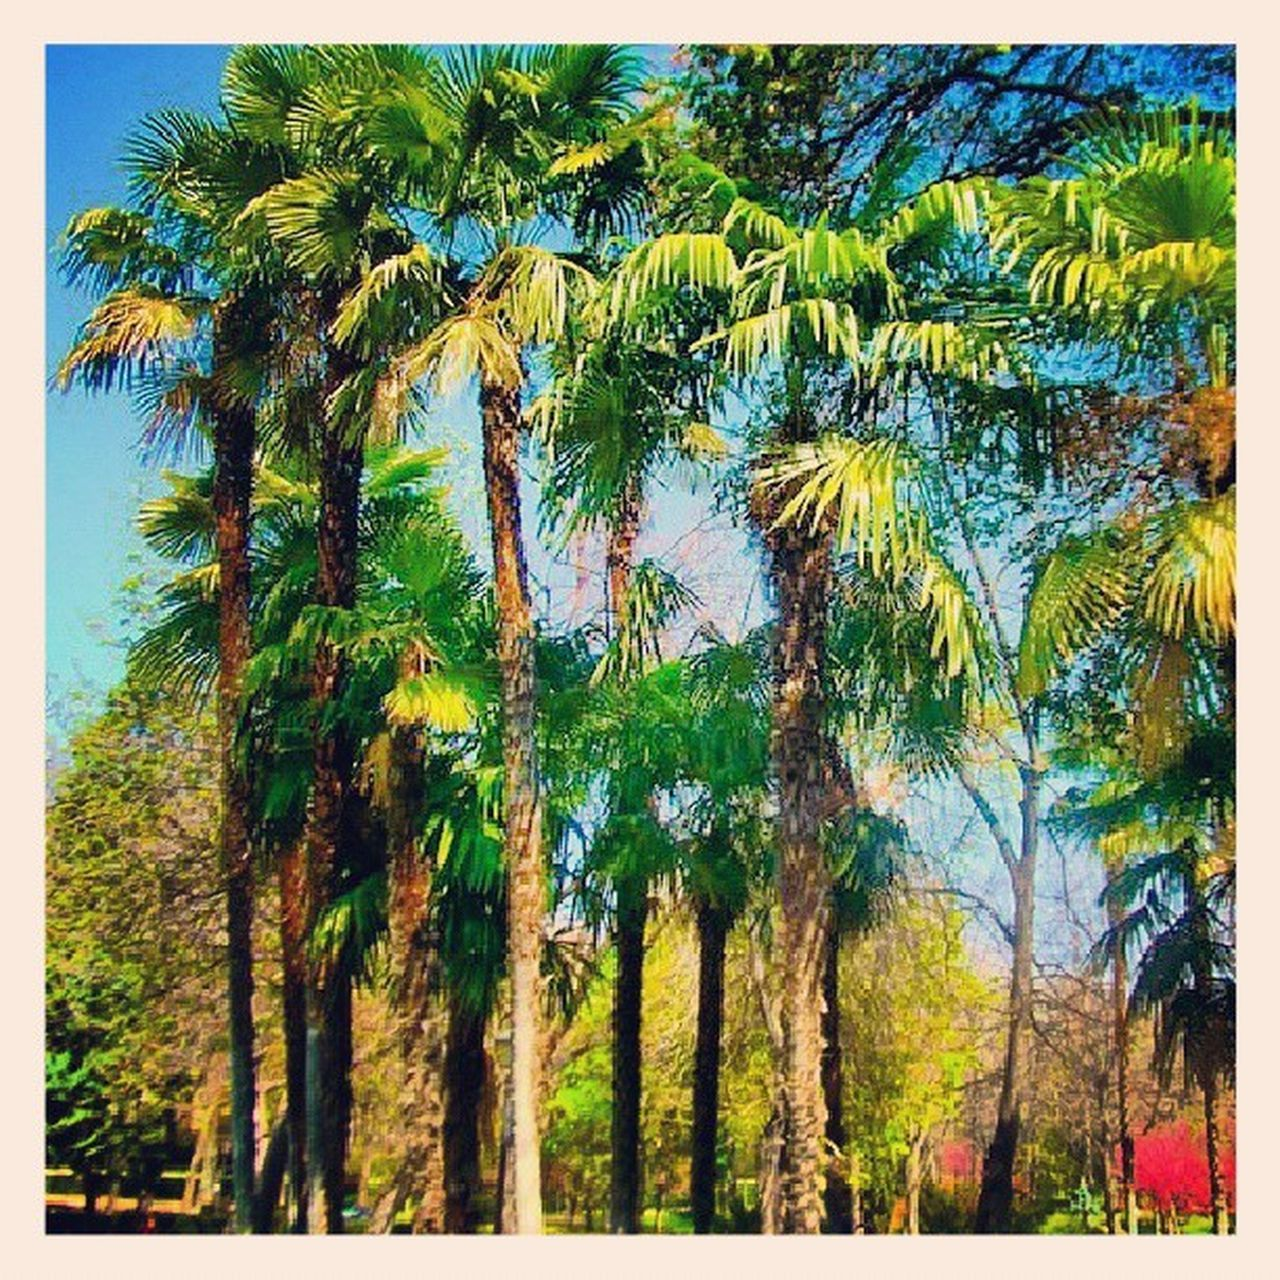 palm tree, tree, nature, growth, beauty in nature, tree trunk, tranquility, scenics, outdoors, day, no people, summer, low angle view, forest, sky